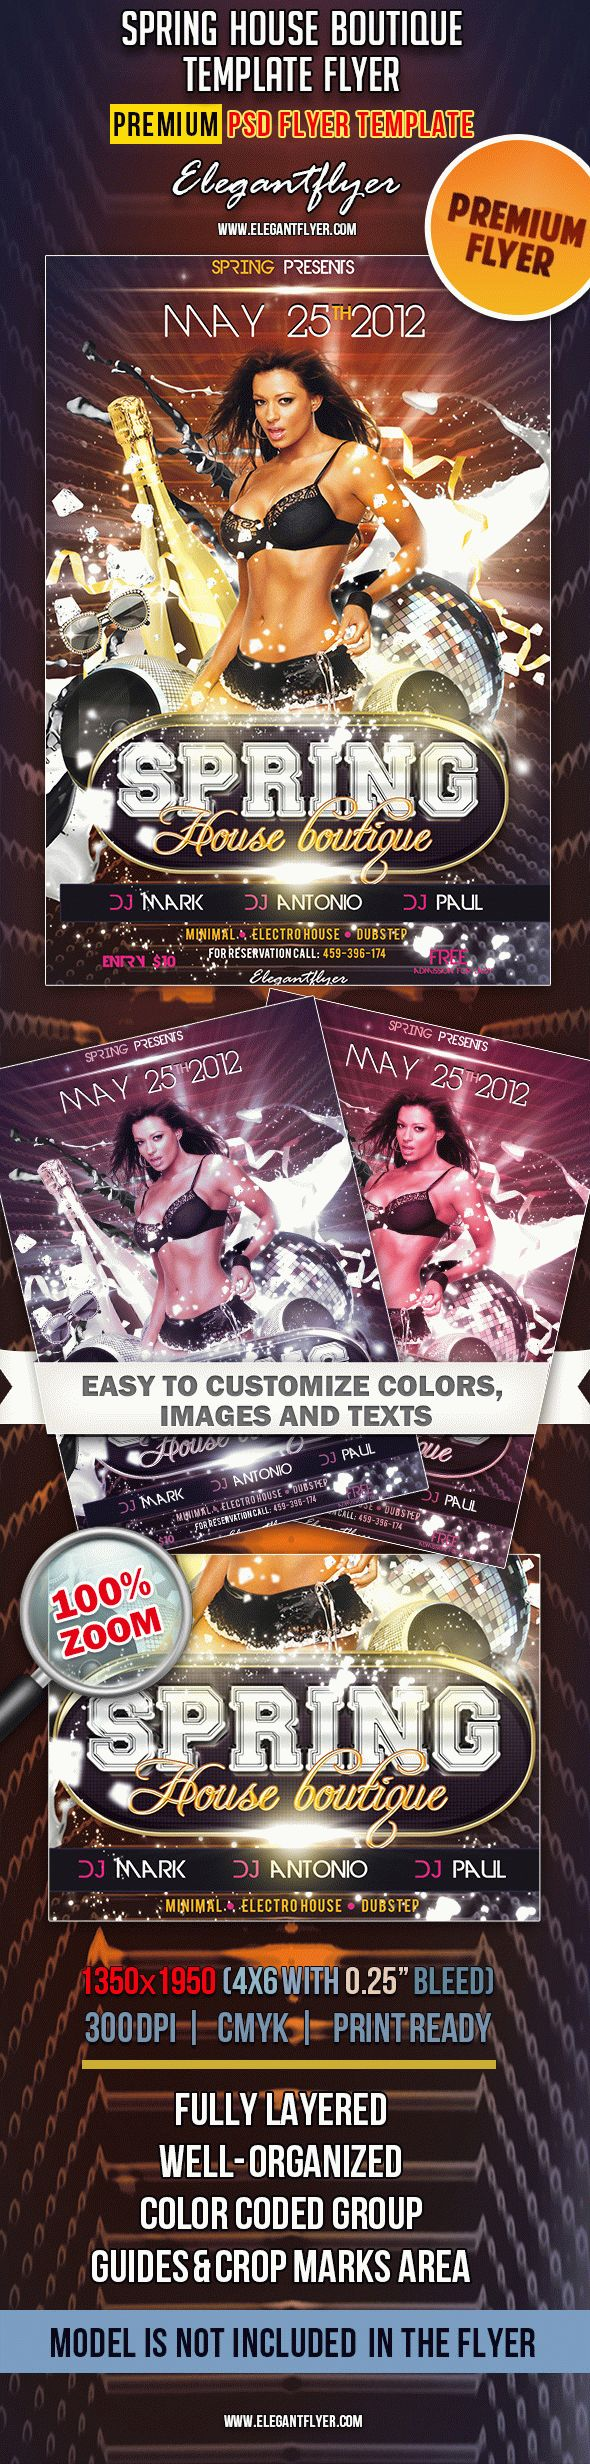 Spring House Boutique – Premium Club flyer PSD Template